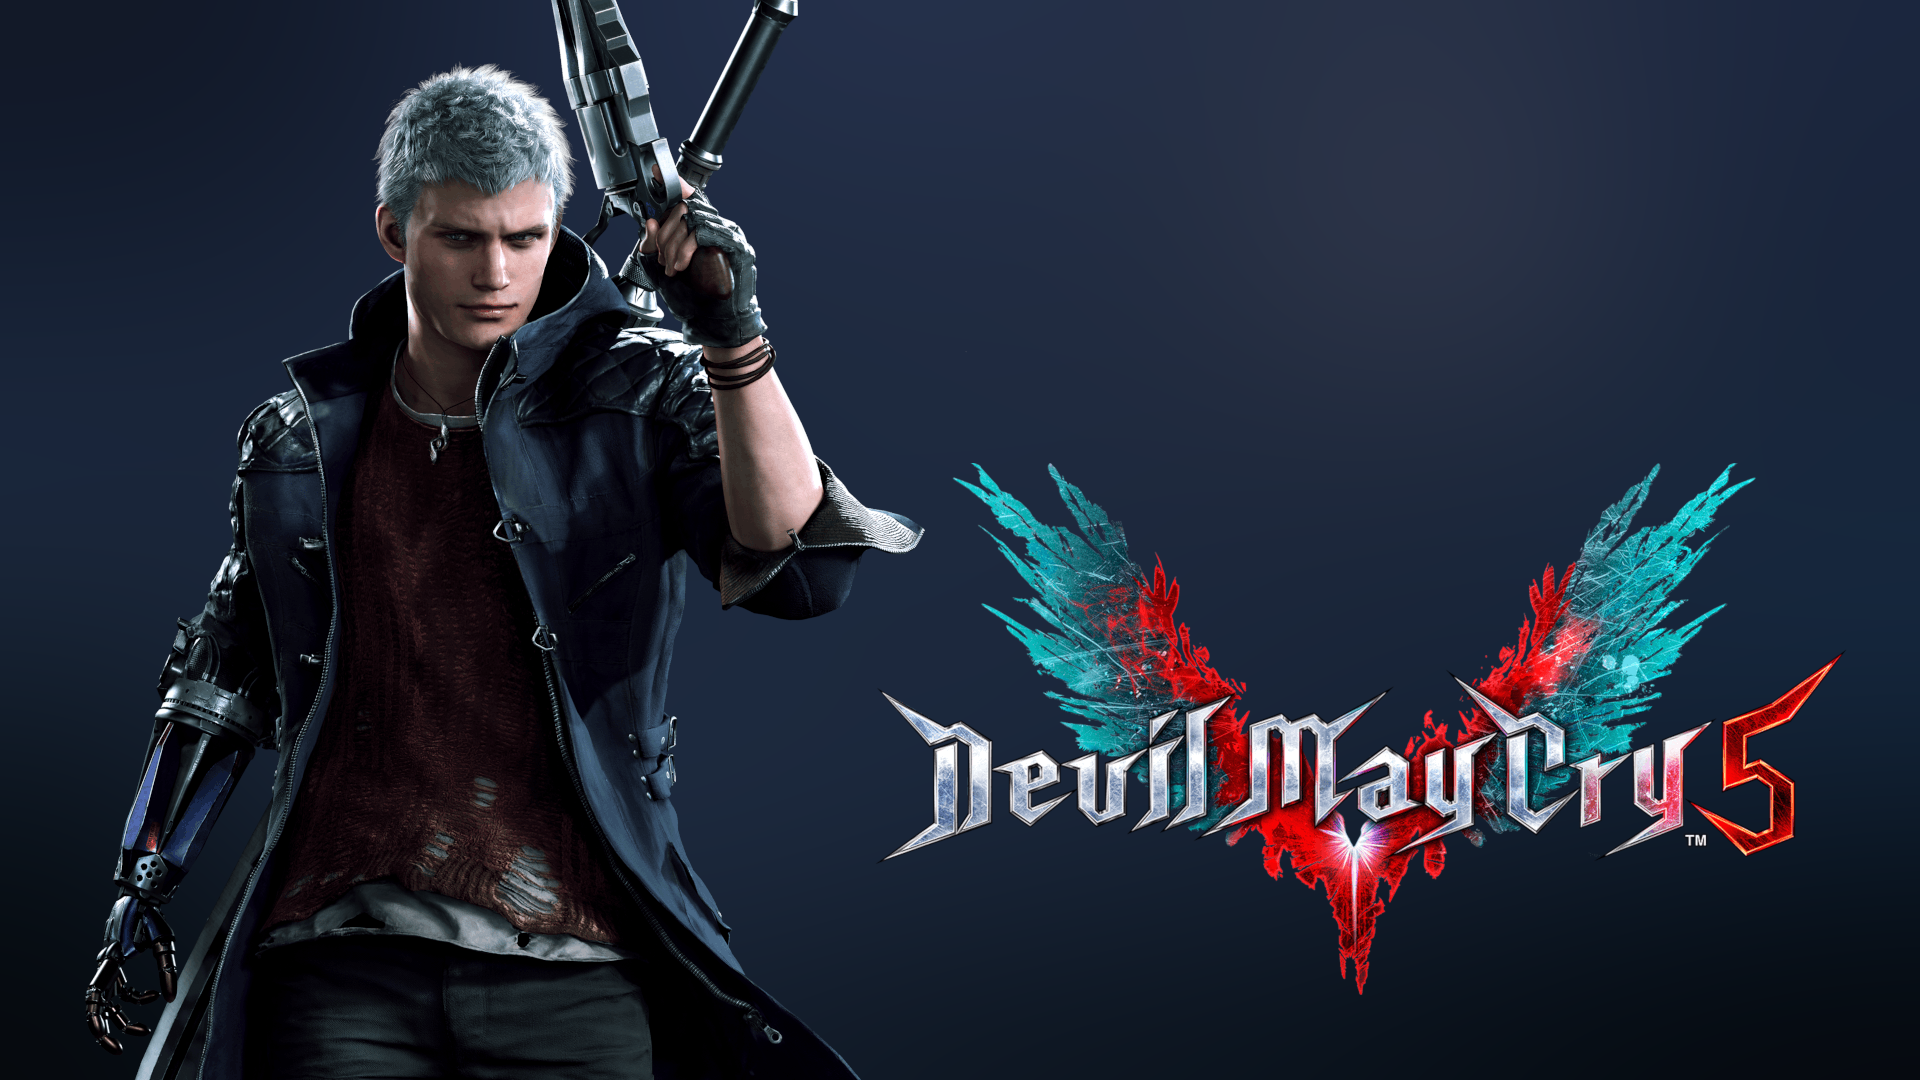 Nero Devil May Cry 5 Hd Wallpaper Background Image 1920x1080